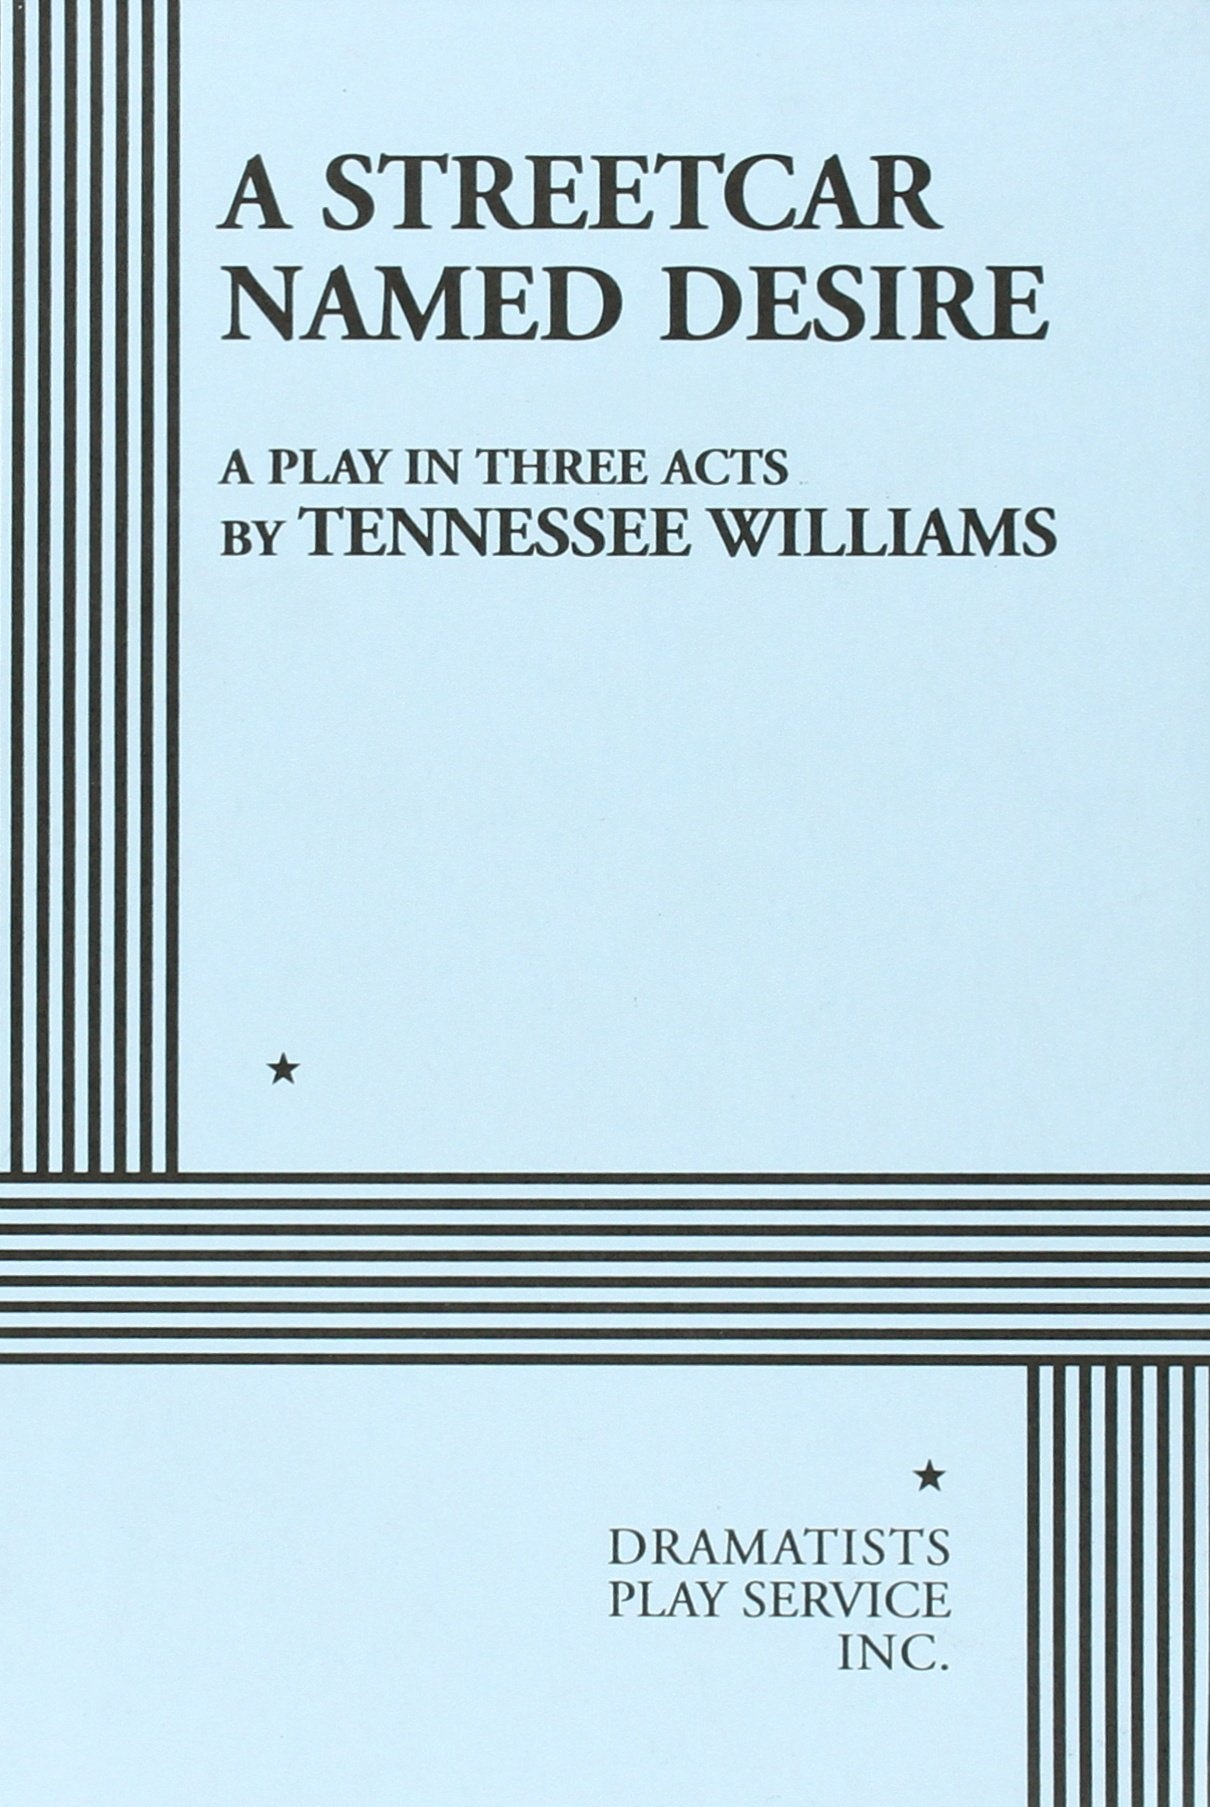 an analysis of a streetcar names desire by williams tennessee About a streetcar named desire bookmark this page manage my reading list the symbol employed most frequently by williams in his emphasis of the essential differences in the worlds is light it represents the reality stanley lives by and the harshness blanche must soften.